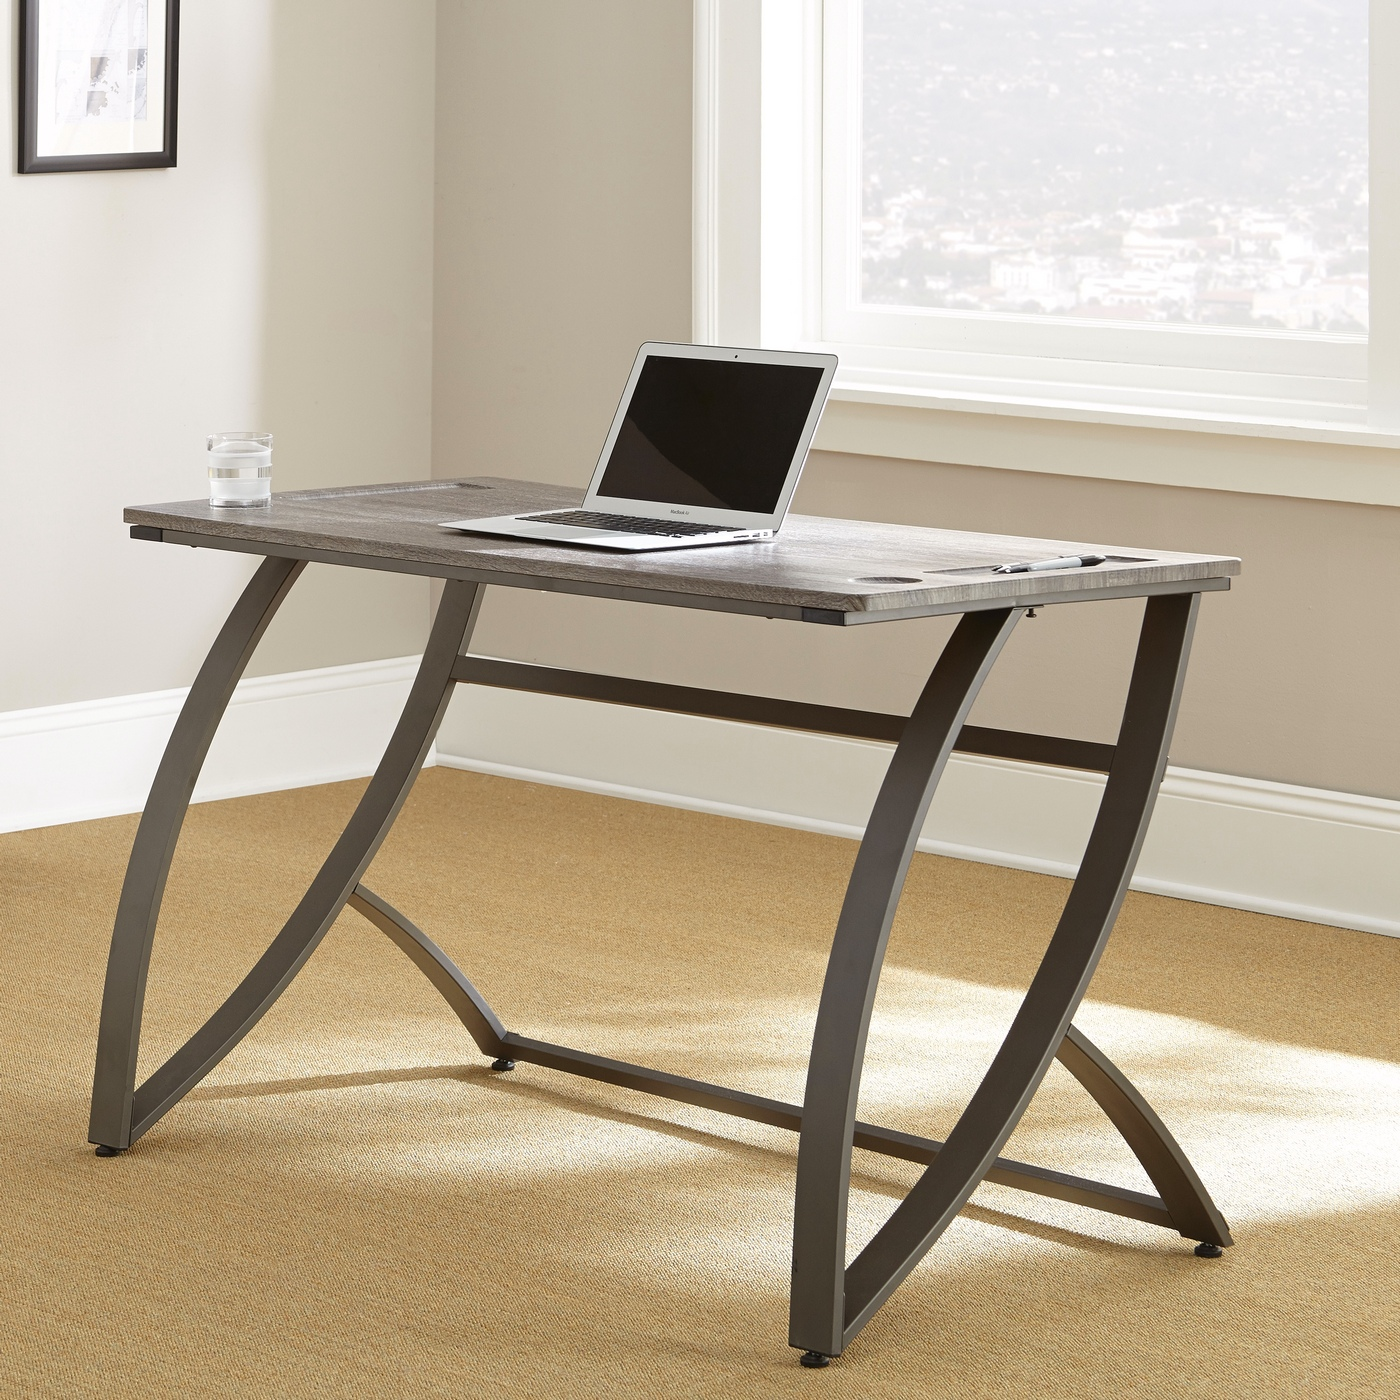 Hatfield Ultrasleek Minimalist 54quot Desk In Driftwood Grey